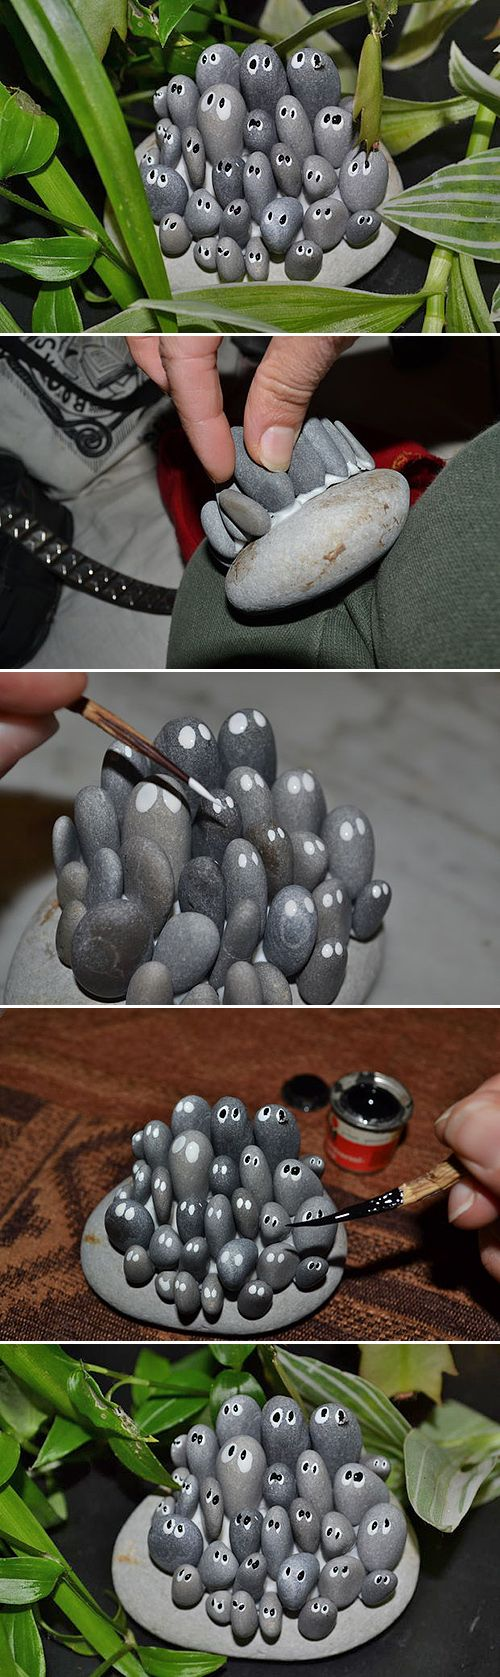 DIY Garden Trinkets - Awesome Ideas, Projects and Tutorials! Including, from 'instructables', this creative 'garden thing' project with rocks.